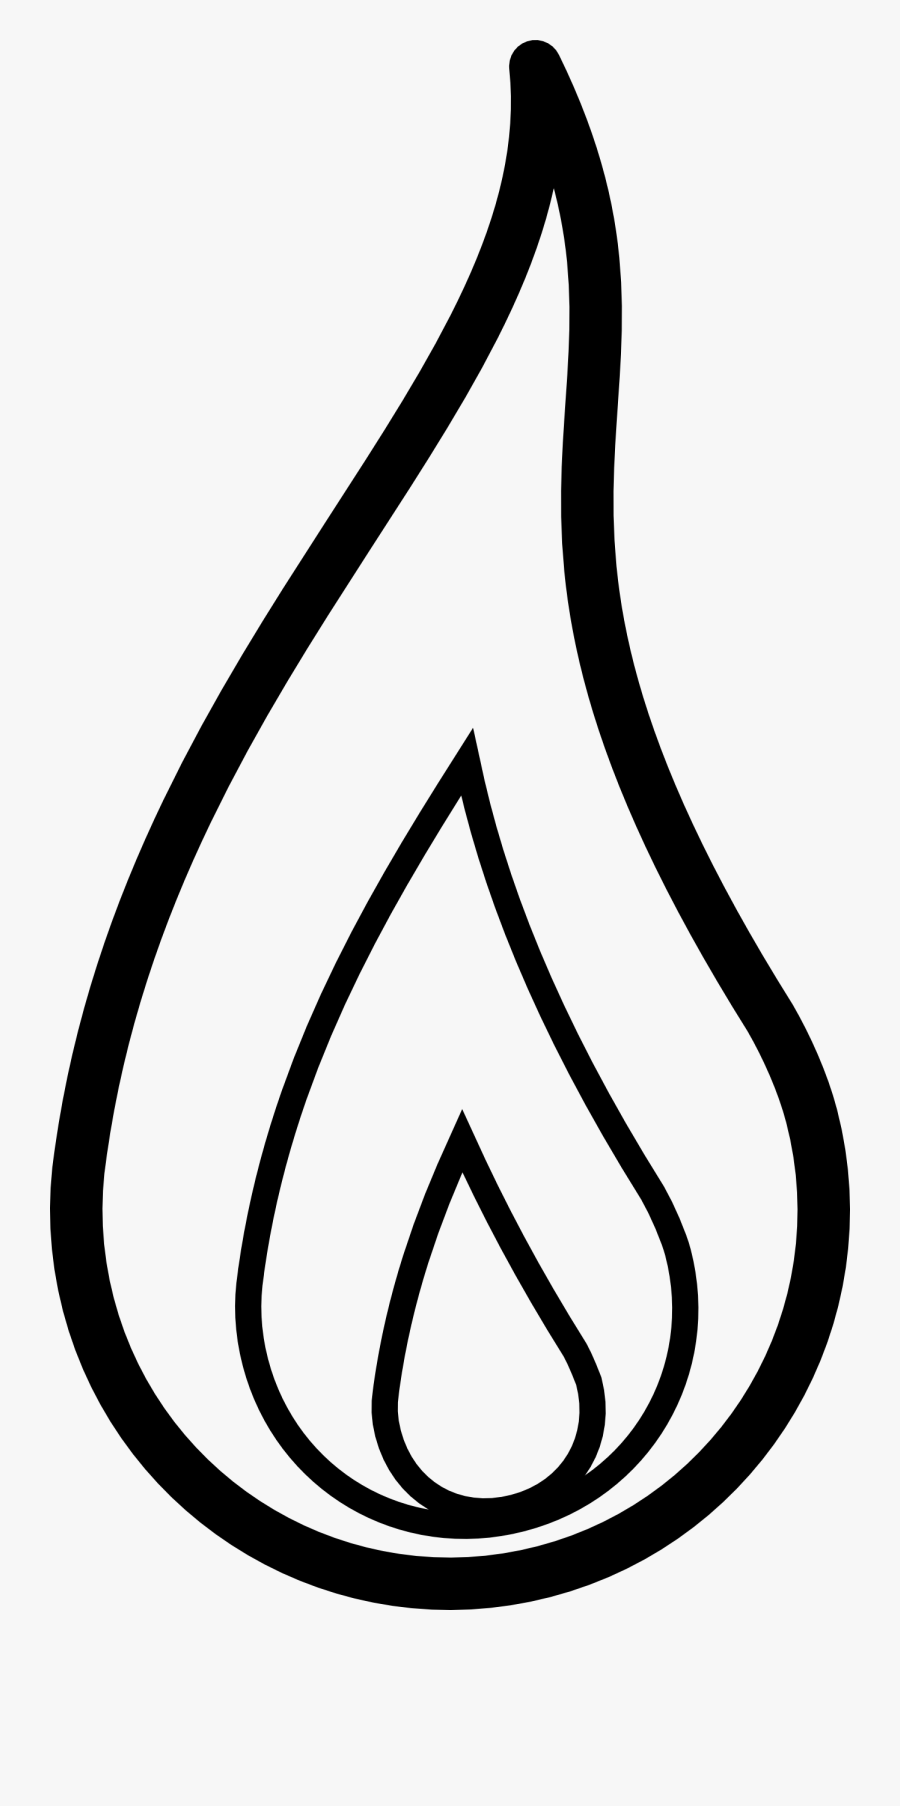 Flame Black And White Clipart, Transparent Clipart